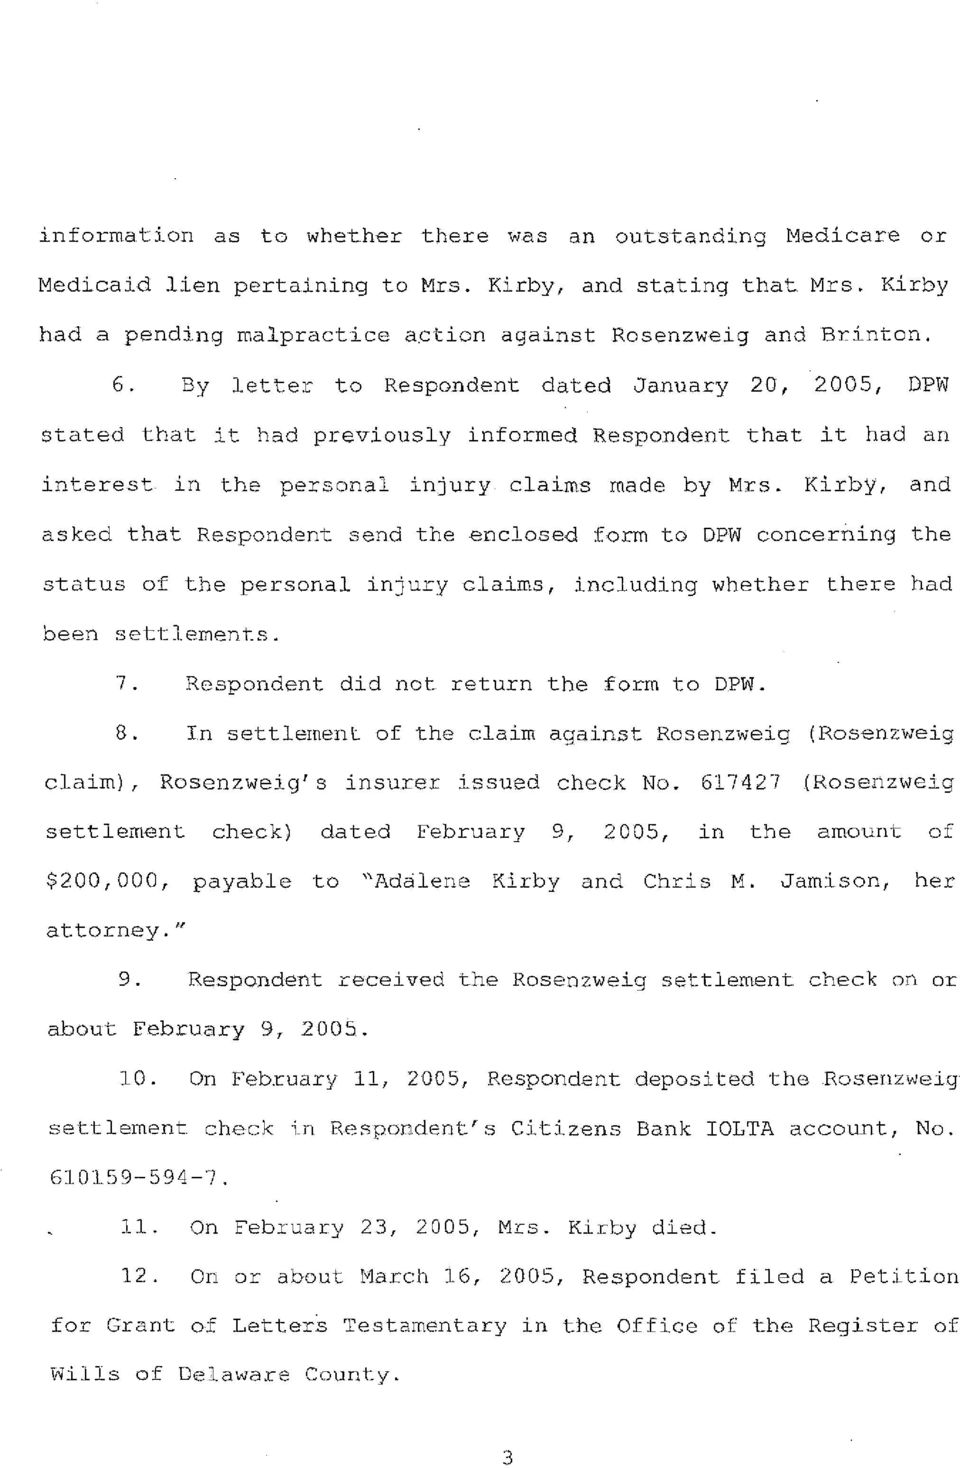 Kirby, and asked that Respondent send the enclosed form to DPW concerning the status of the personal injury claims, including whether there had been settlements. 7.